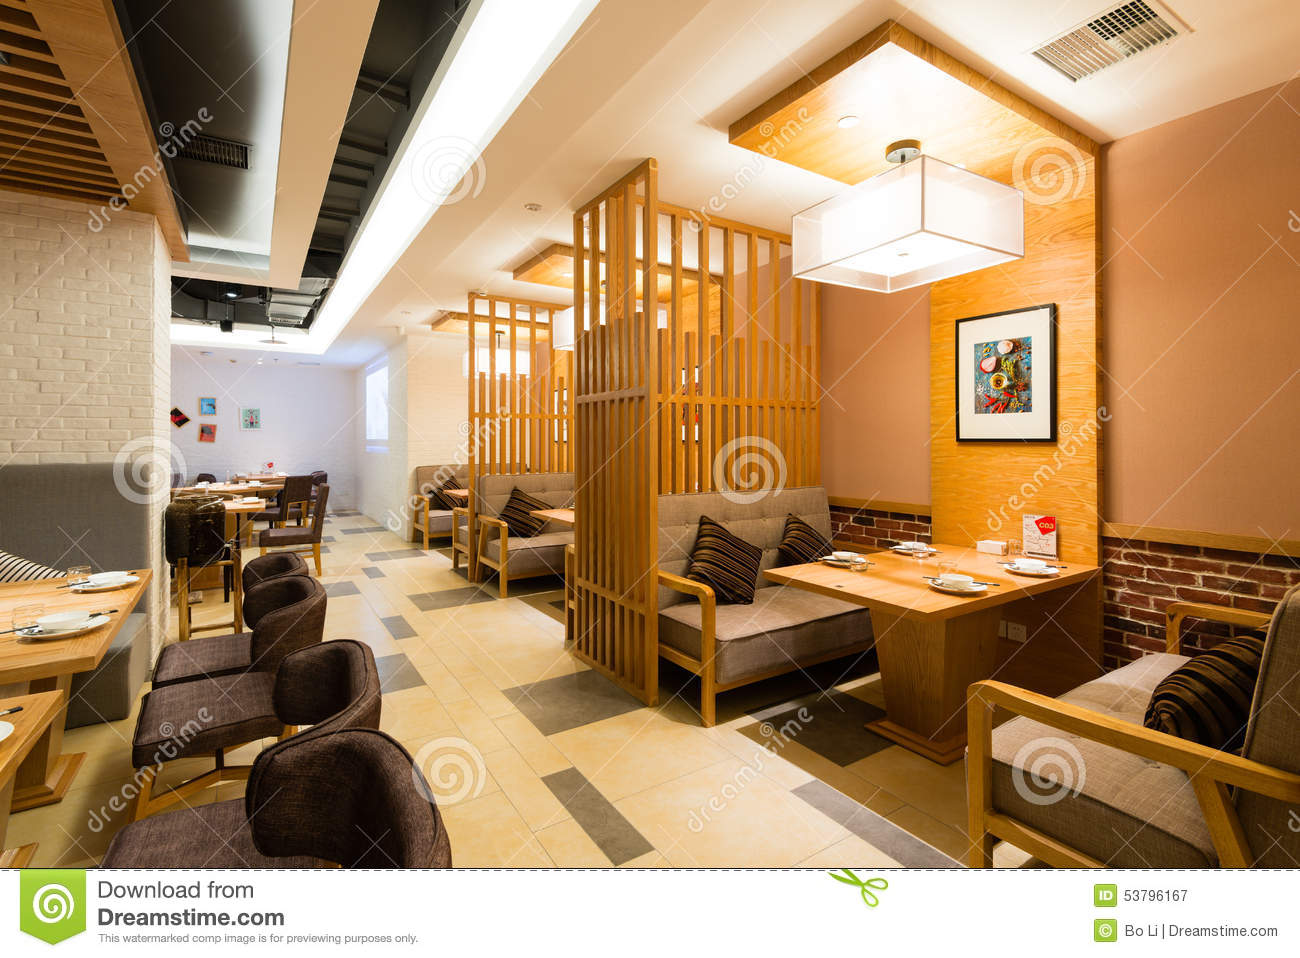 Chinese restaurant editorial photography image of stylish